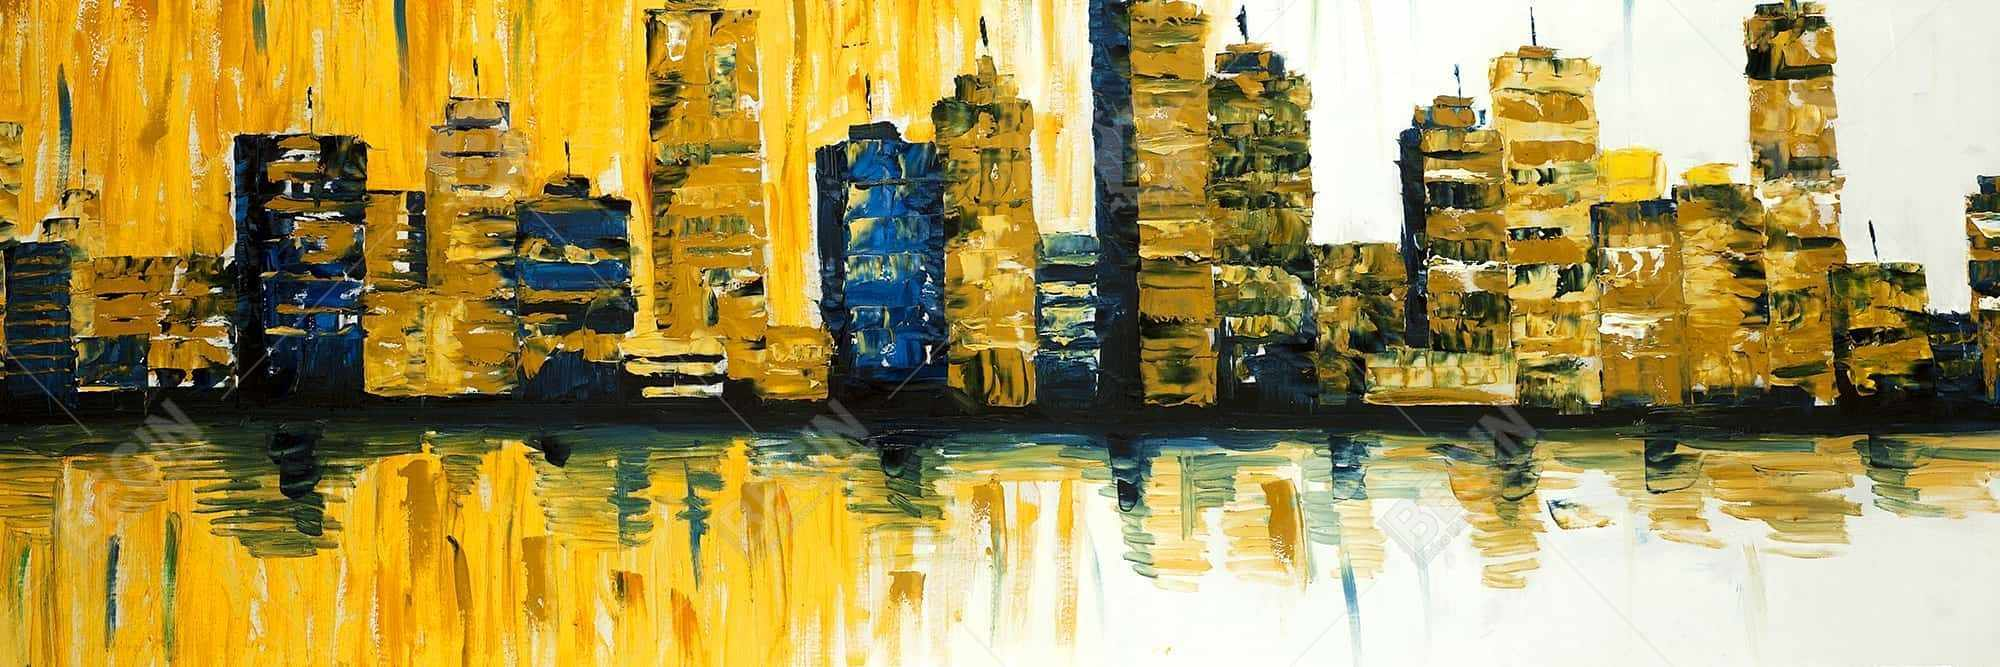 Yellow abstract skyscrapers